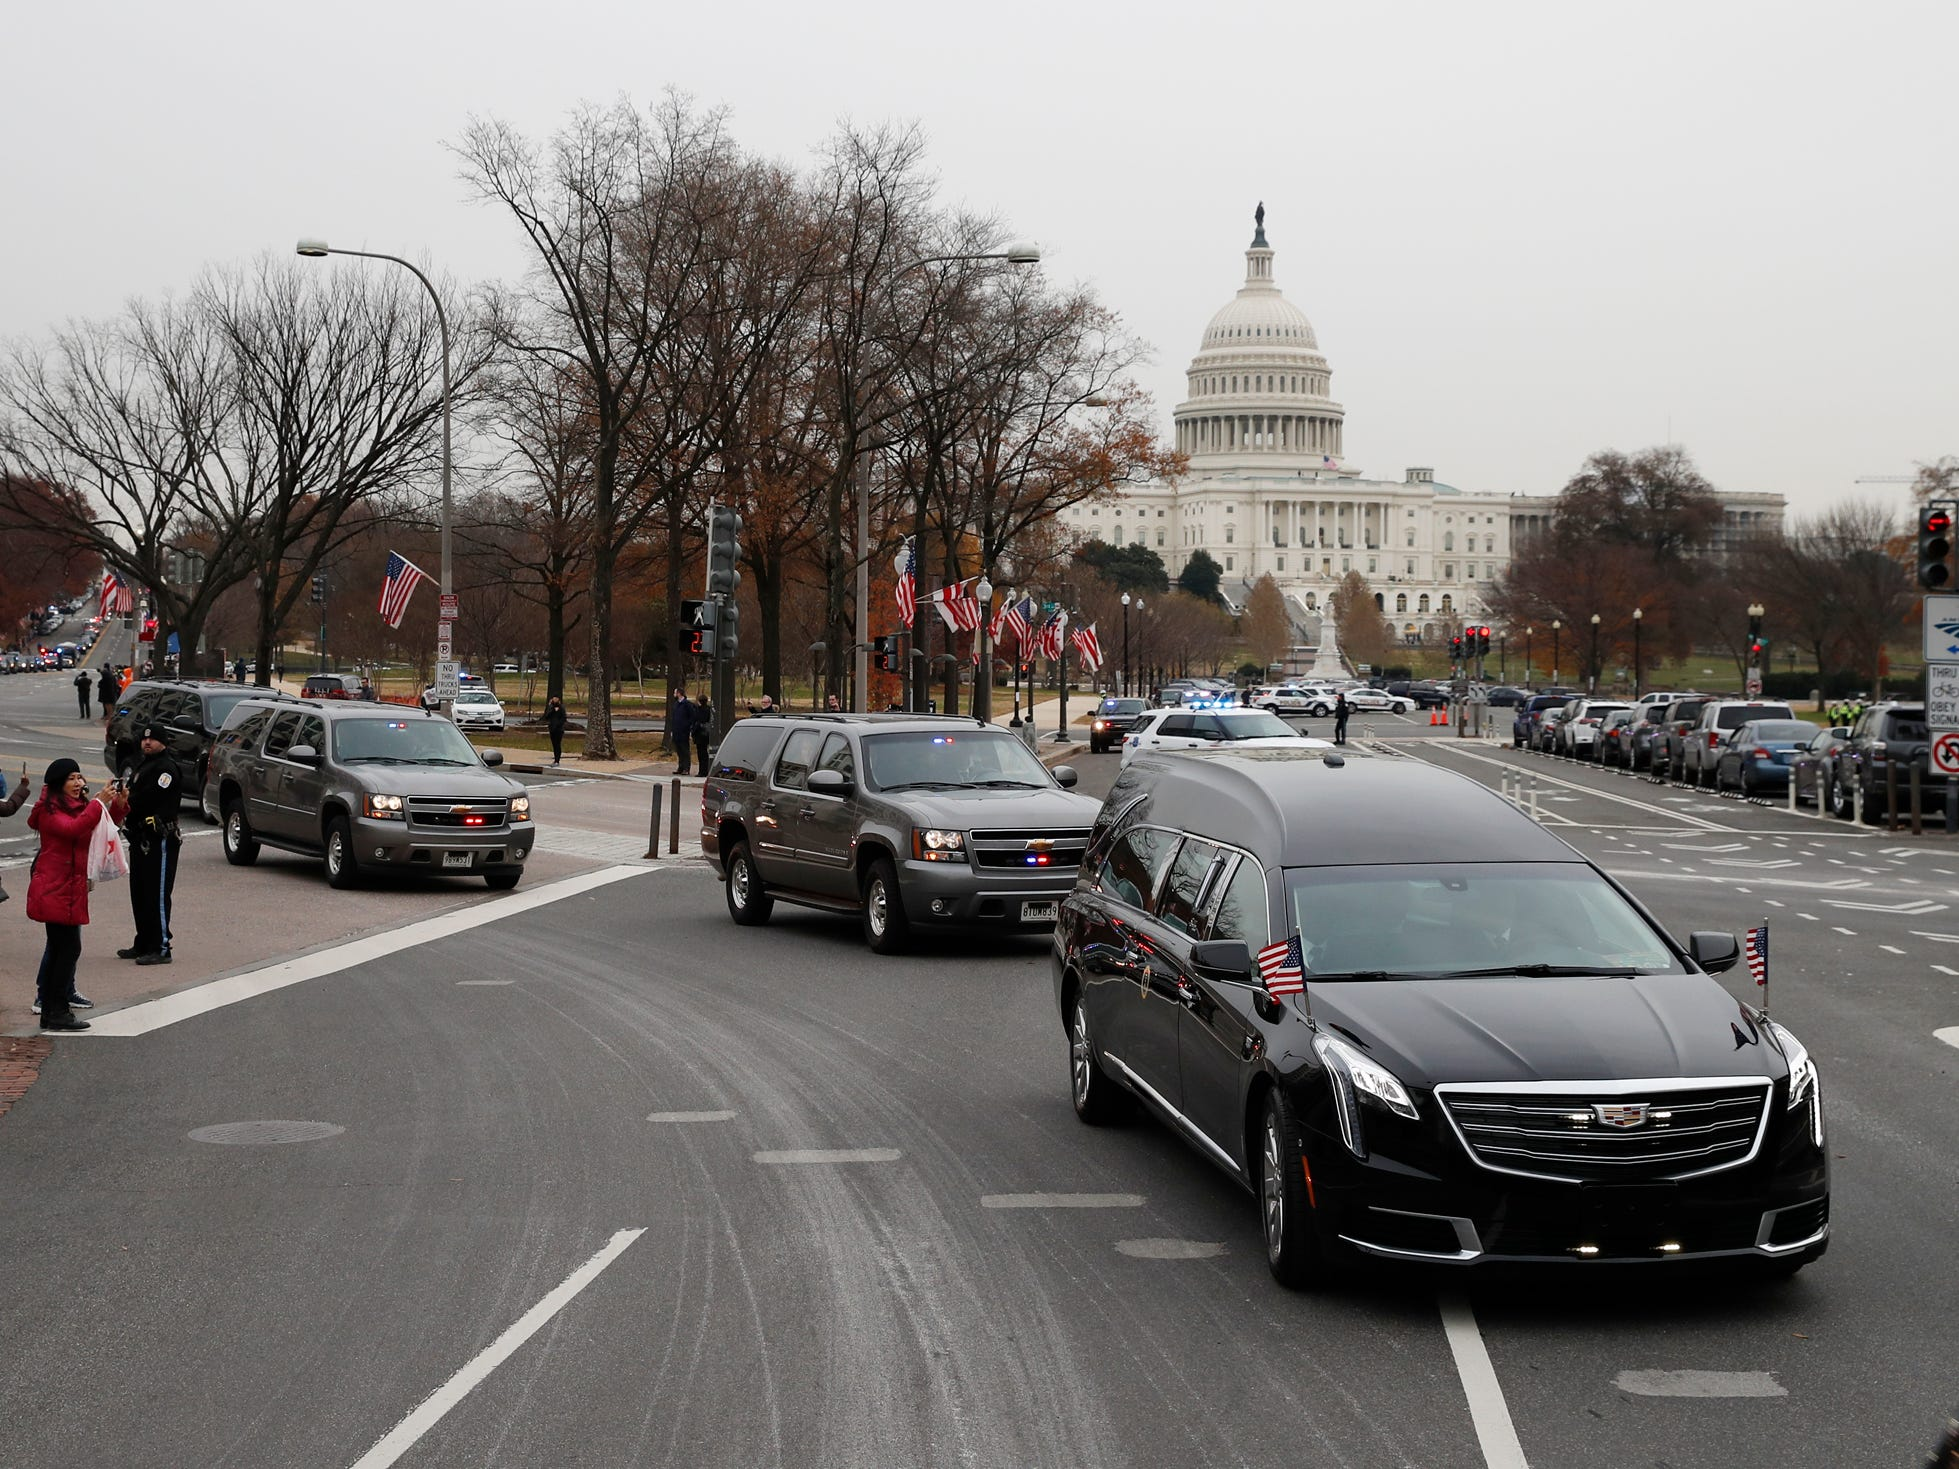 The hearse carrying the flag-draped casket of former President George H.W. Bush is driven away from the Capitol to a State Funeral at the National Cathedral, Wednesday, Dec. 5, 2018, in Washington. (AP Photo/Alex Brandon, Pool) ORG XMIT: DCAB205